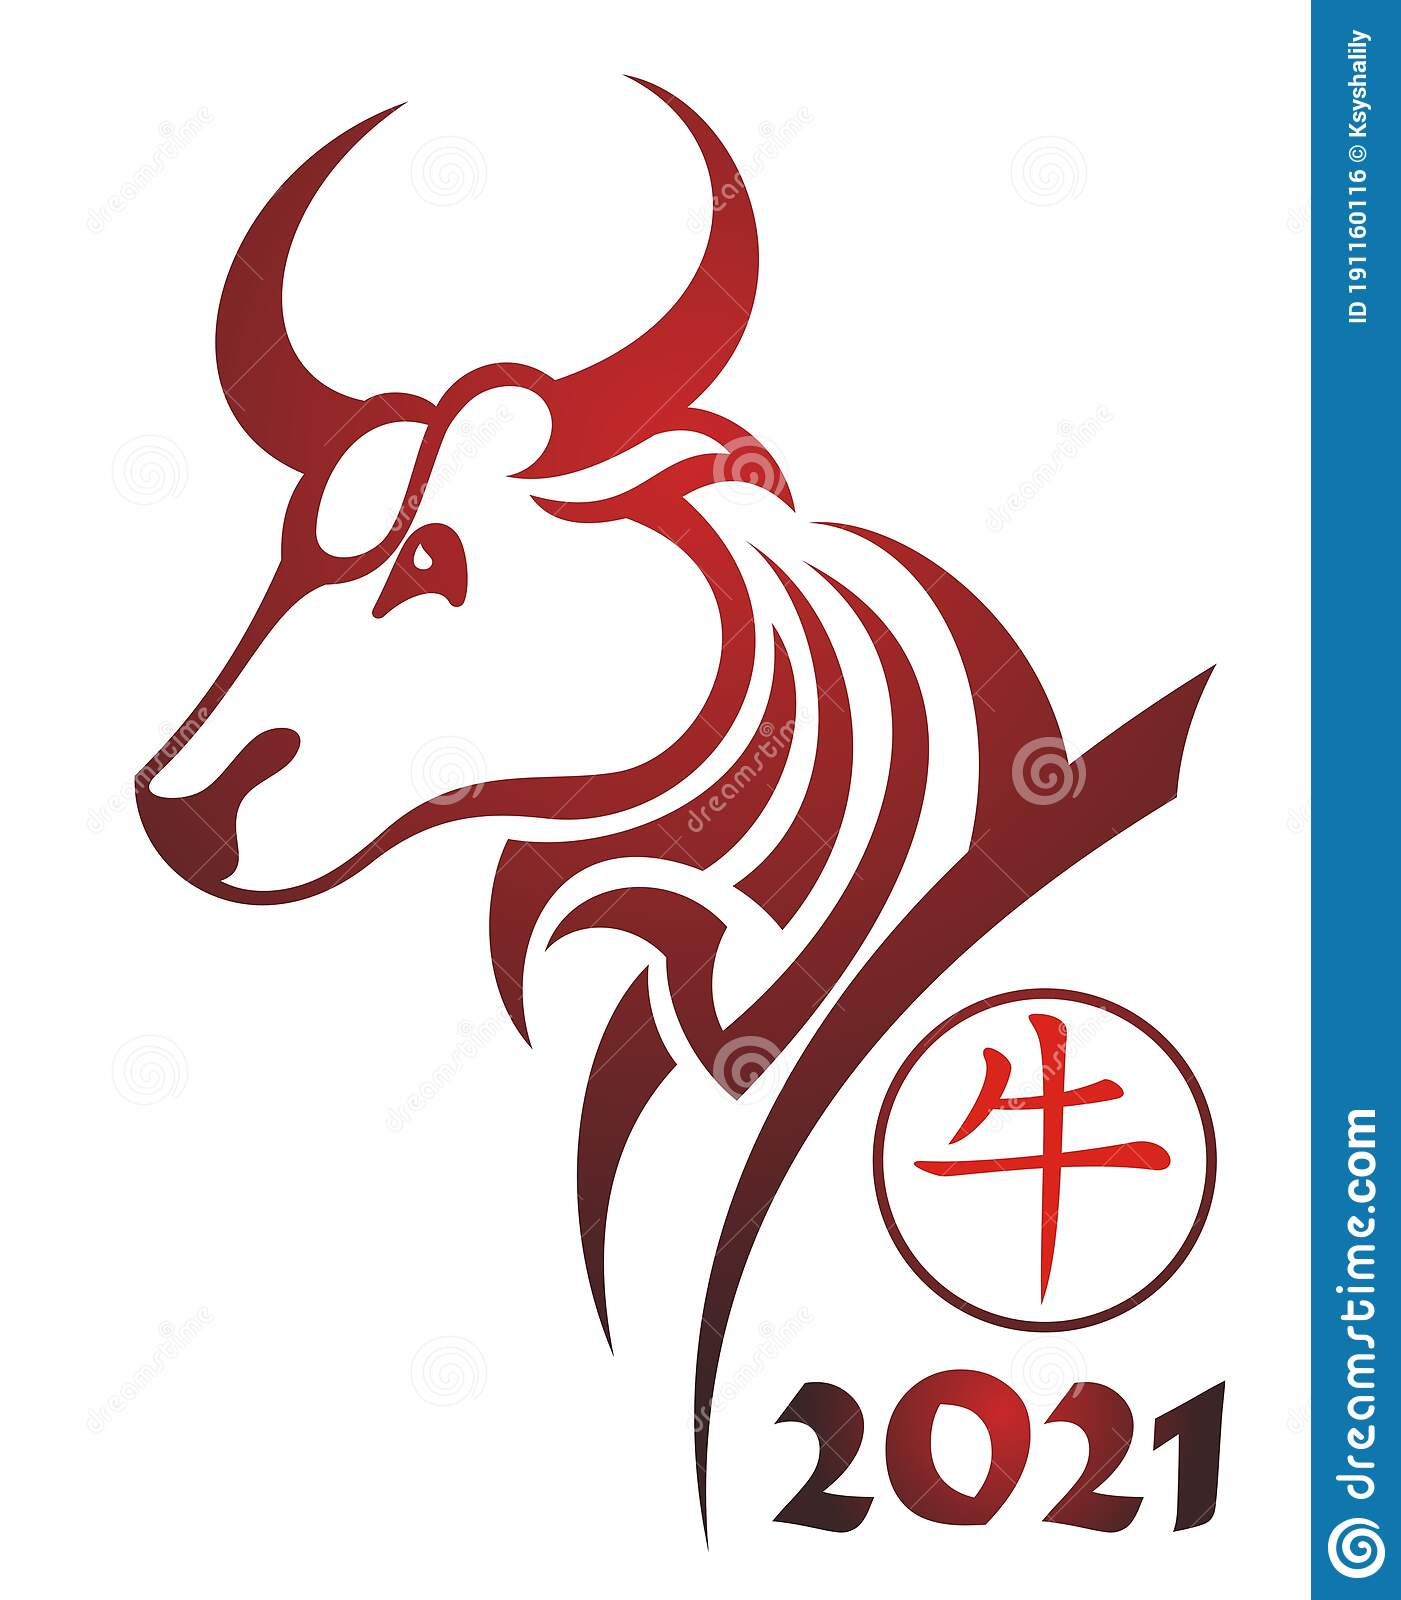 Chinese New Year 2021 Year Of The Ox Stock Vector Illustration Of Chinese Prosperity 191160116